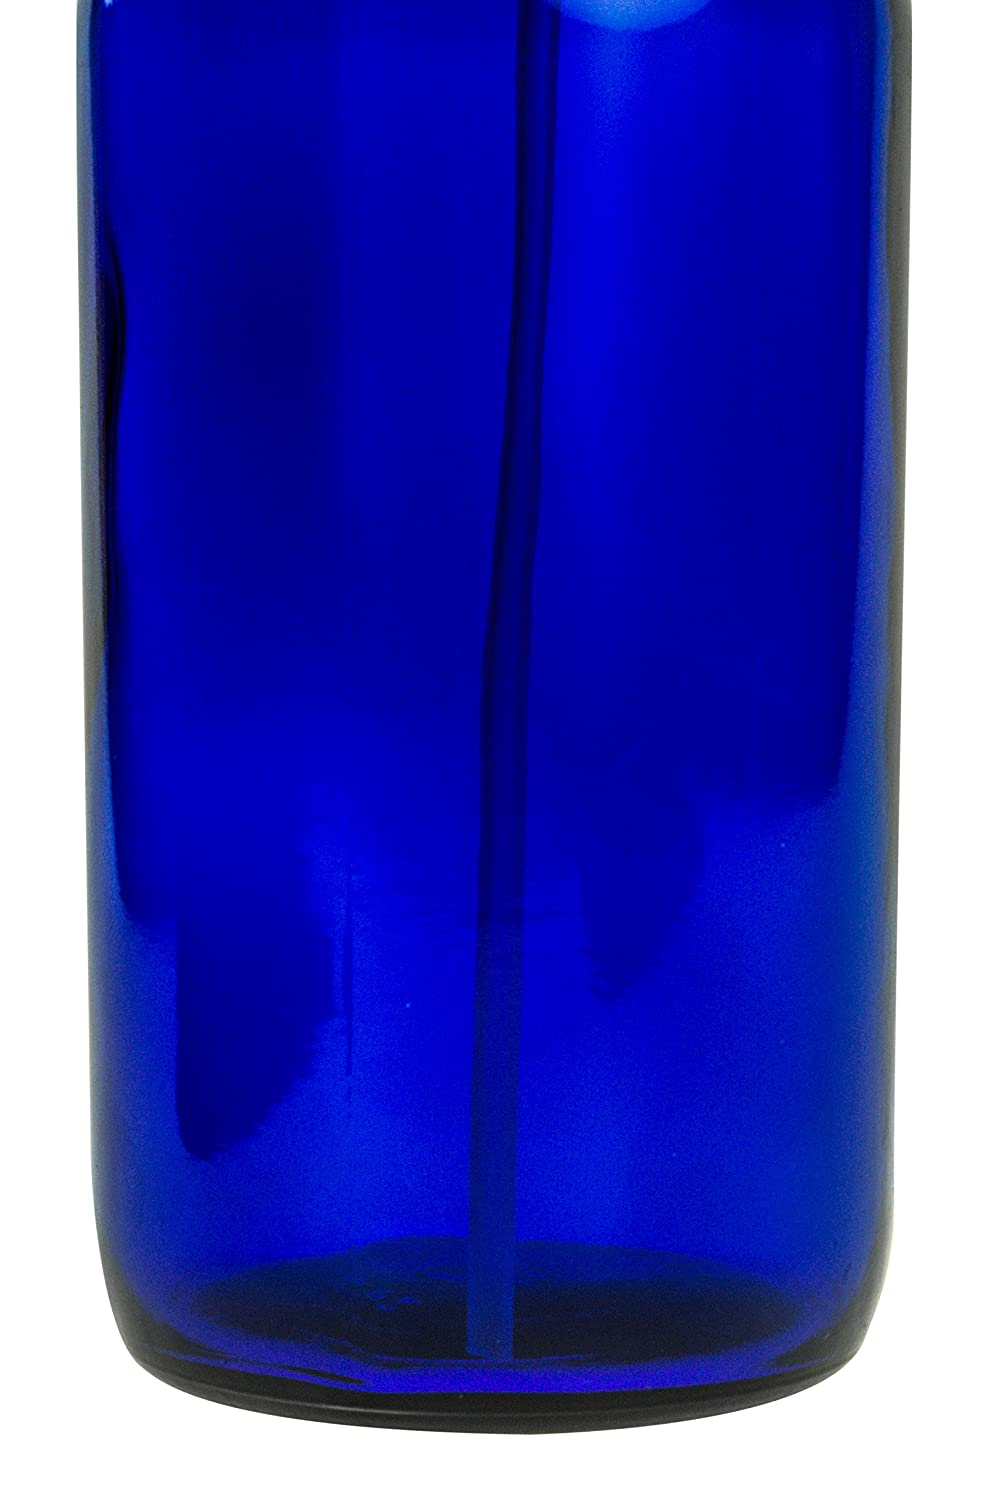 Blue Glass Spray Bottle - Large 16 oz Refillable Container for Essential Oils, Cleaning Products, or Aromatherapy - Black Trigger Sprayer w/Mist and Stream Settings - 6 Pack: Industrial & Scientific